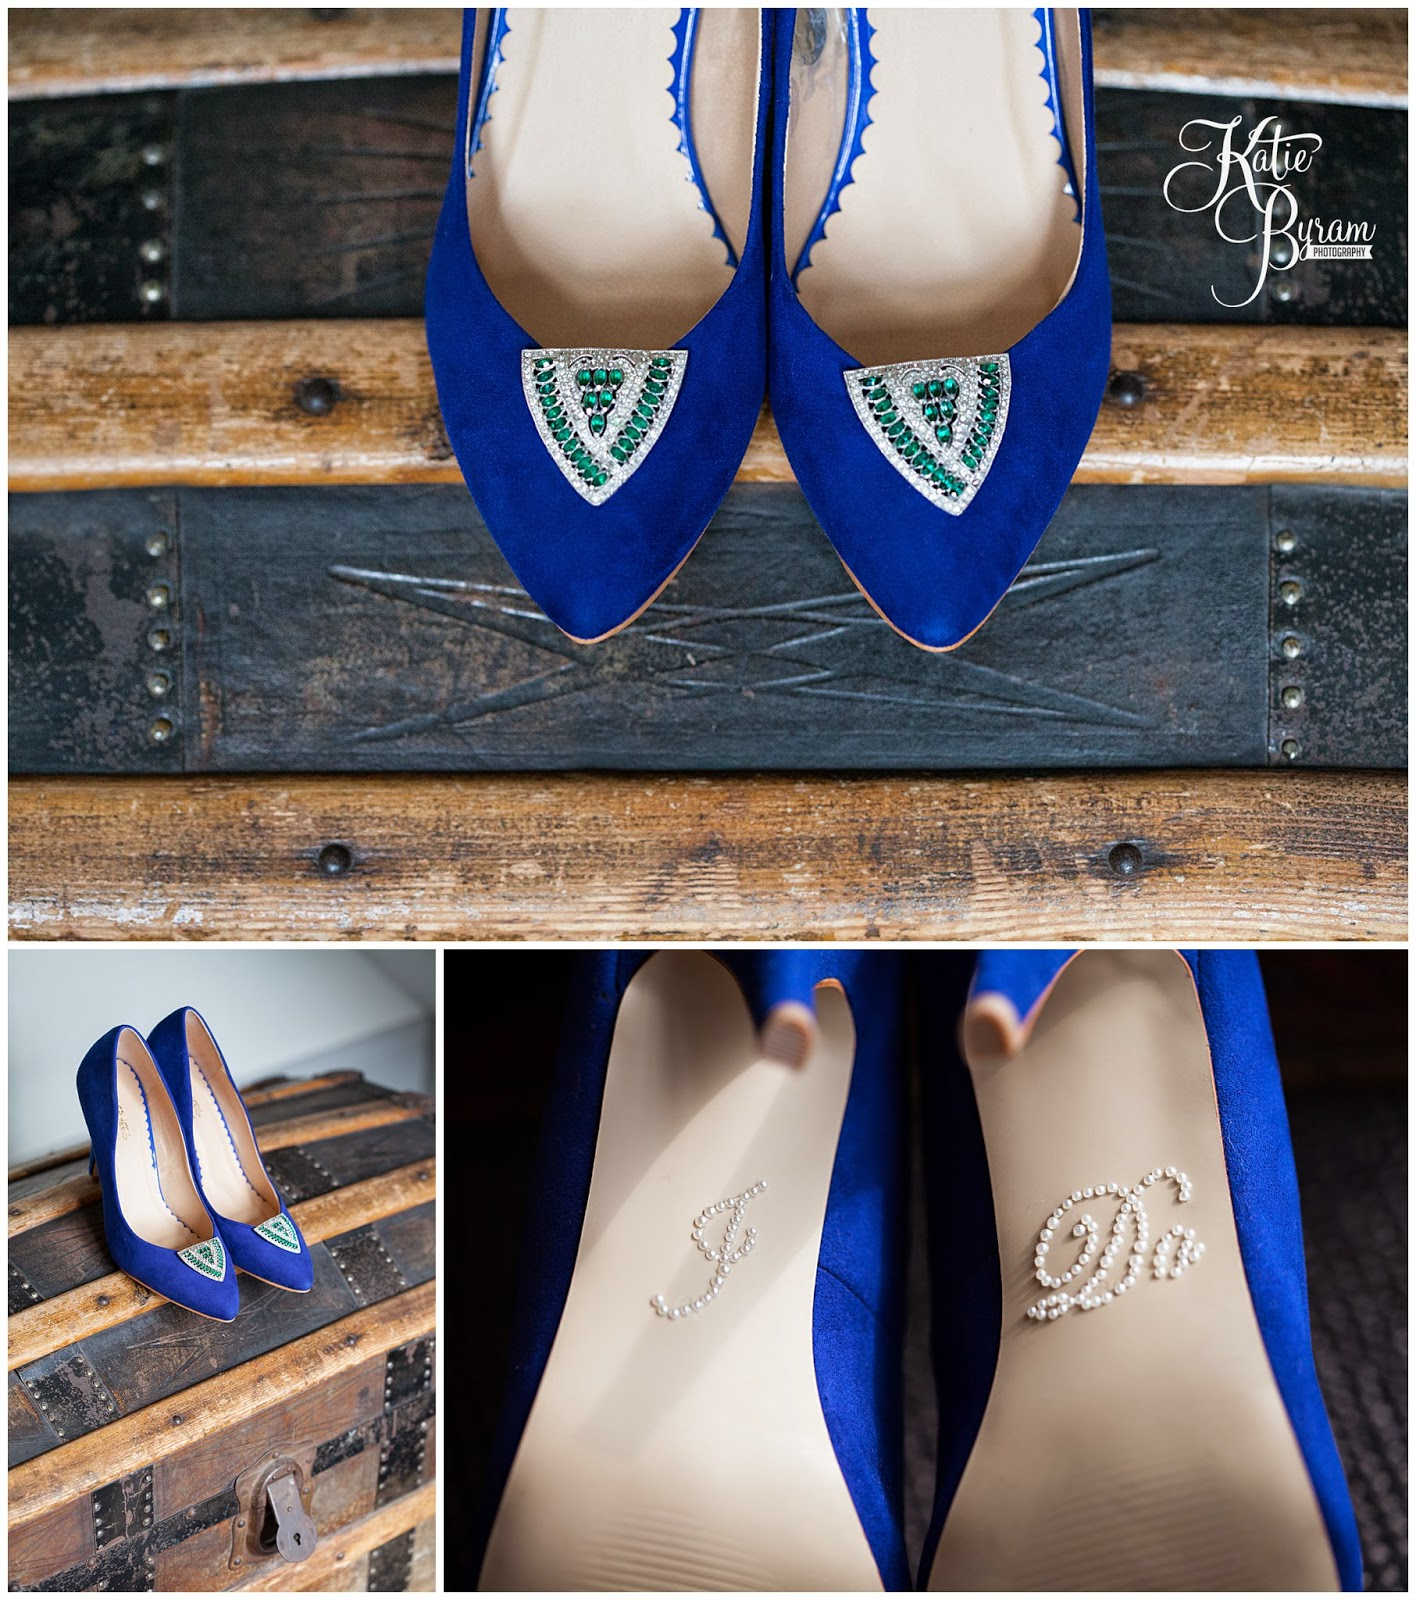 blue wedding shoes, hotel du vin newcastle, hotel du vin wedding, hotel du vin wedding photographs, hotel du vin newcastle wedding photographs, vintage wedding, small wedding, katie byram photography, newcastle wedding venue, city wedding venue